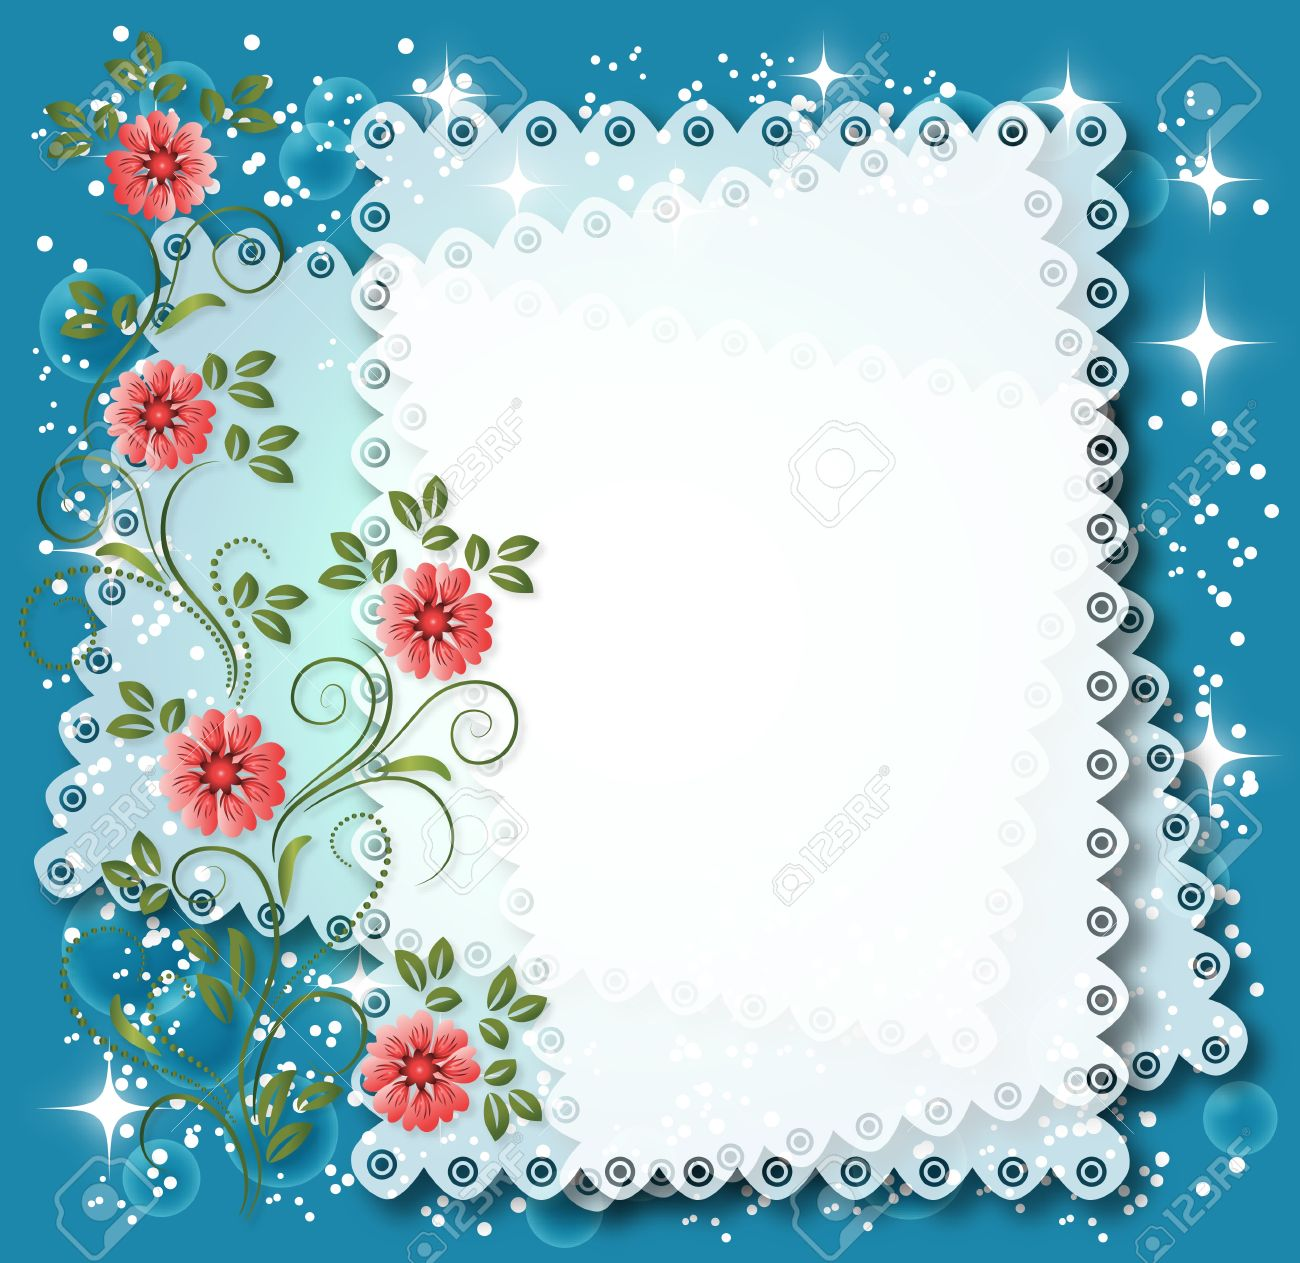 Magic floral background with stars and a place for text or photo. Stock Vector - 10343149